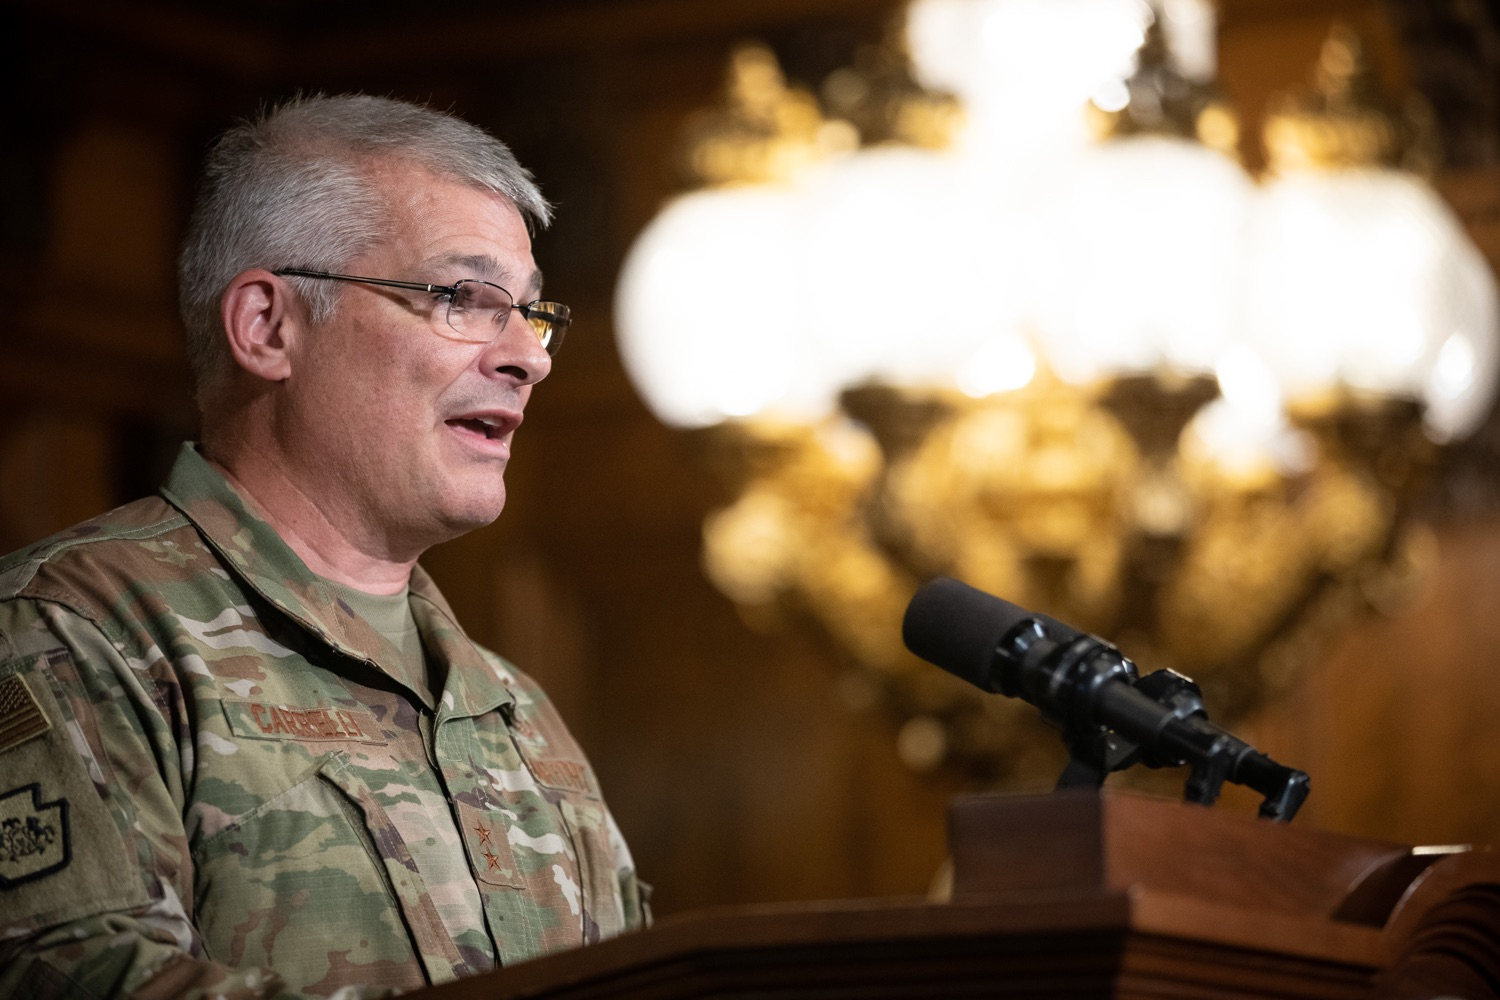 "<a href=""http://filesource.abacast.com/commonwealthofpa/photo/17423_gov_trip_recap_dz_013.jpg"" target=""_blank"">⇣ Download Photo<br></a>Harrisburg, PA  Adjutant General Maj. General Tony Carrelli about his recent visit to Lithuania and Poland. Governor Tom Wolf today highlighted the second half of his trip abroad, including visiting with more than 500 PA National Guard (PNG) troops in Poland, and honoring the Tree of Life synagogue victims at the Auschwitz-Birkenau Memorial. Tuesday, September 17, 2019"